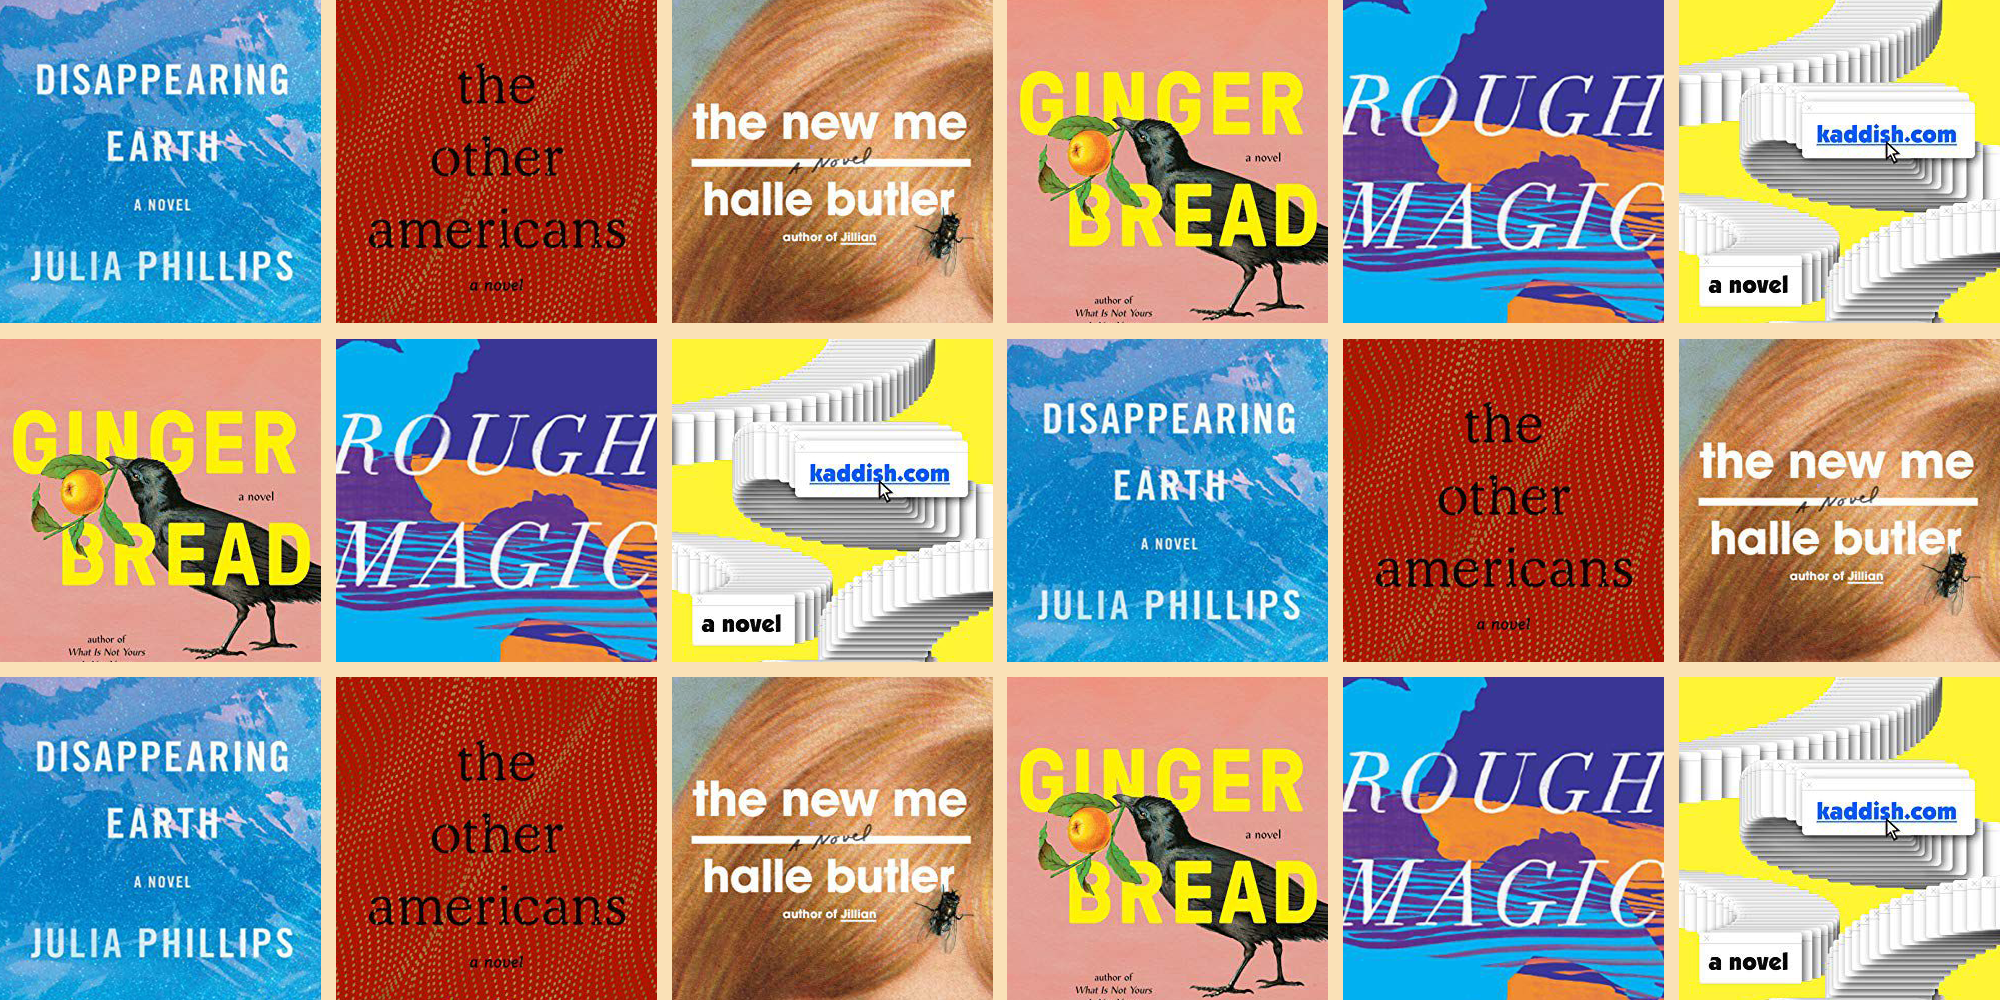 21 New Books To Read In Spring 2019 - Best Spring 2019 Book Releases